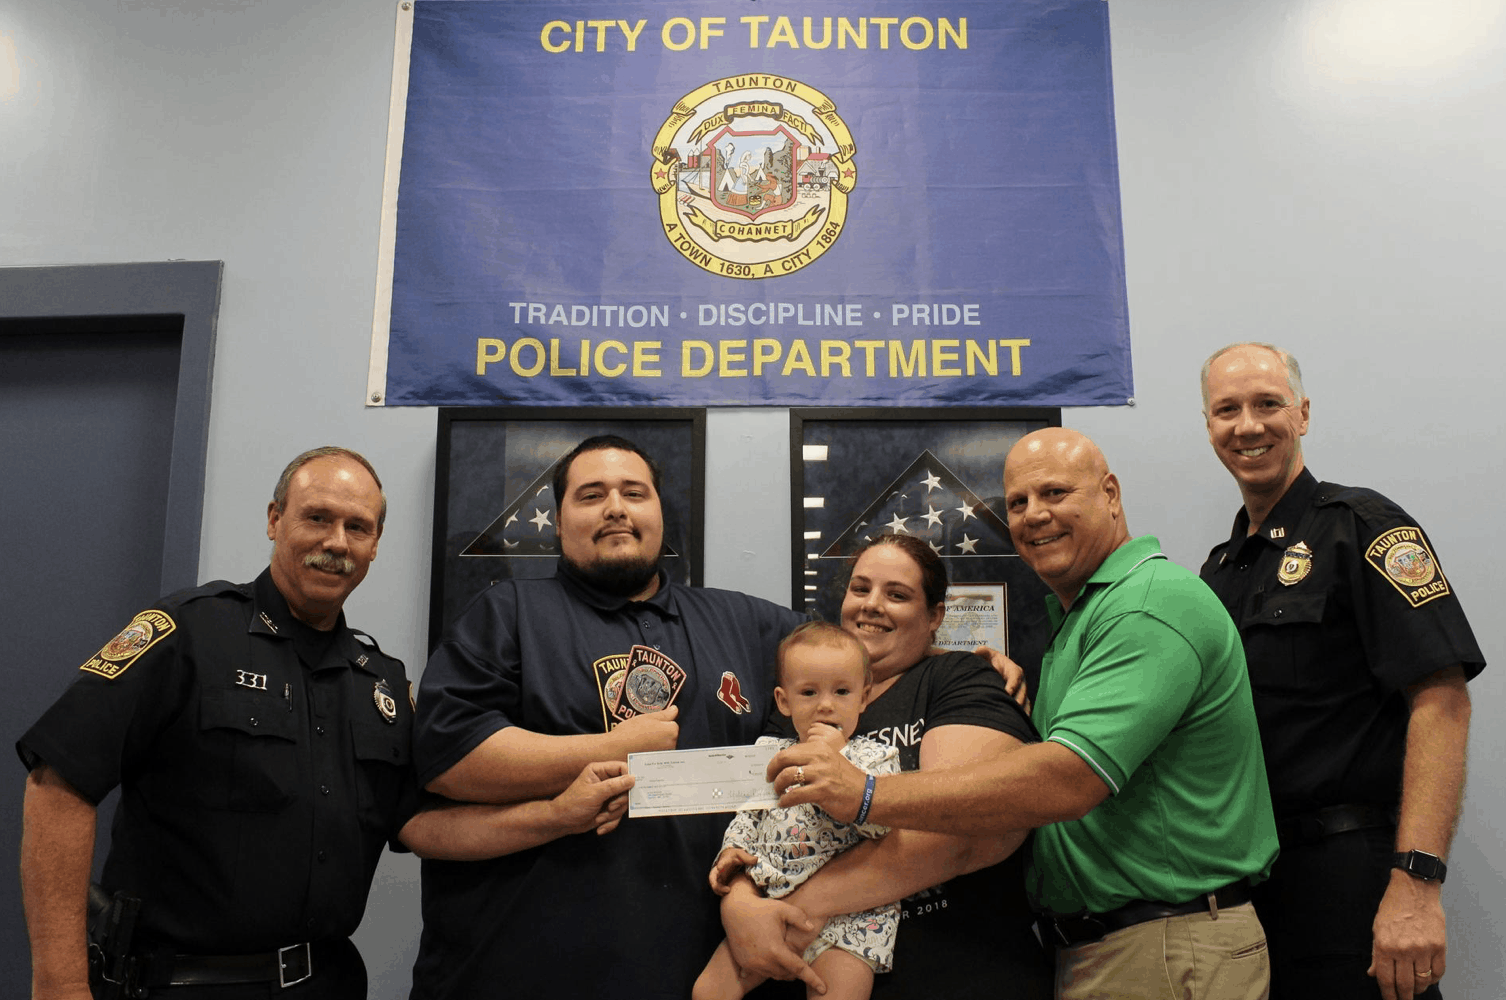 Cops for Kids with Cancer gives donation to couple whose 1-year-old daughter was born with a rare form of a childhood cancer.